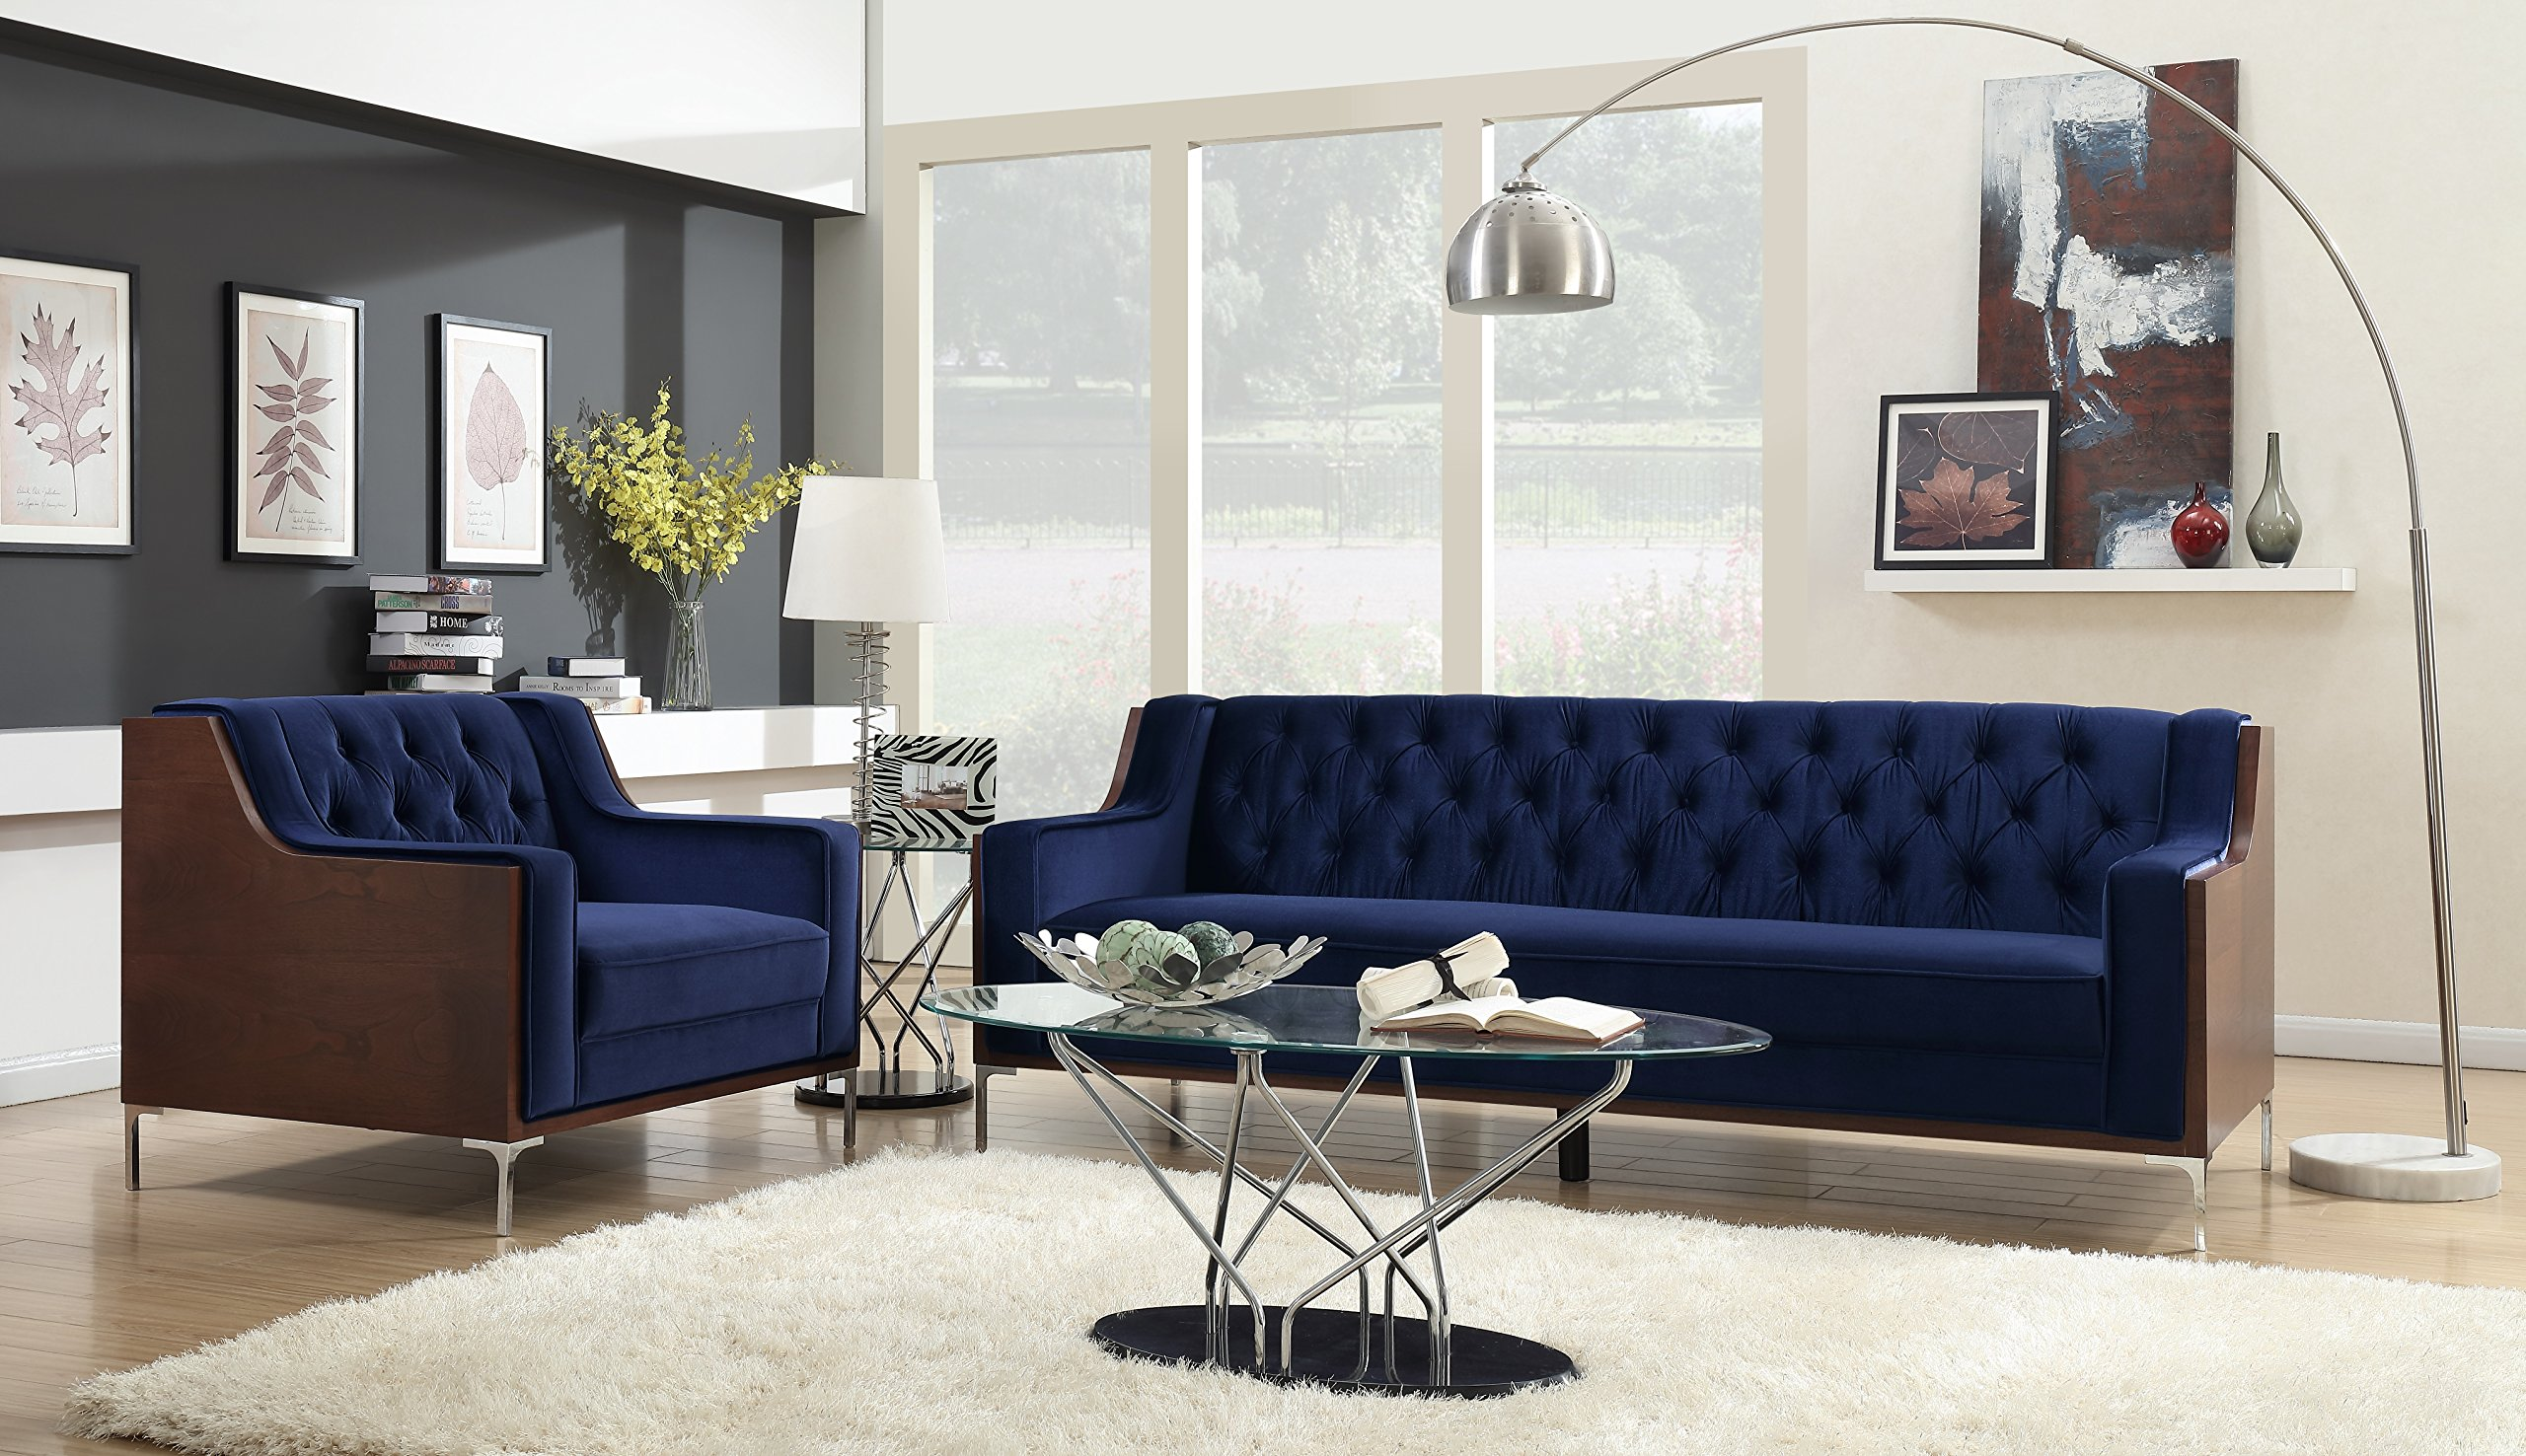 Iconic Home Clark Sofa Button Tufted Velvet Walnut Finish Swoop Arm Wood Frame with Polished Metal Legs, Modern Contemporary, Navy by Iconic Home (Image #2)